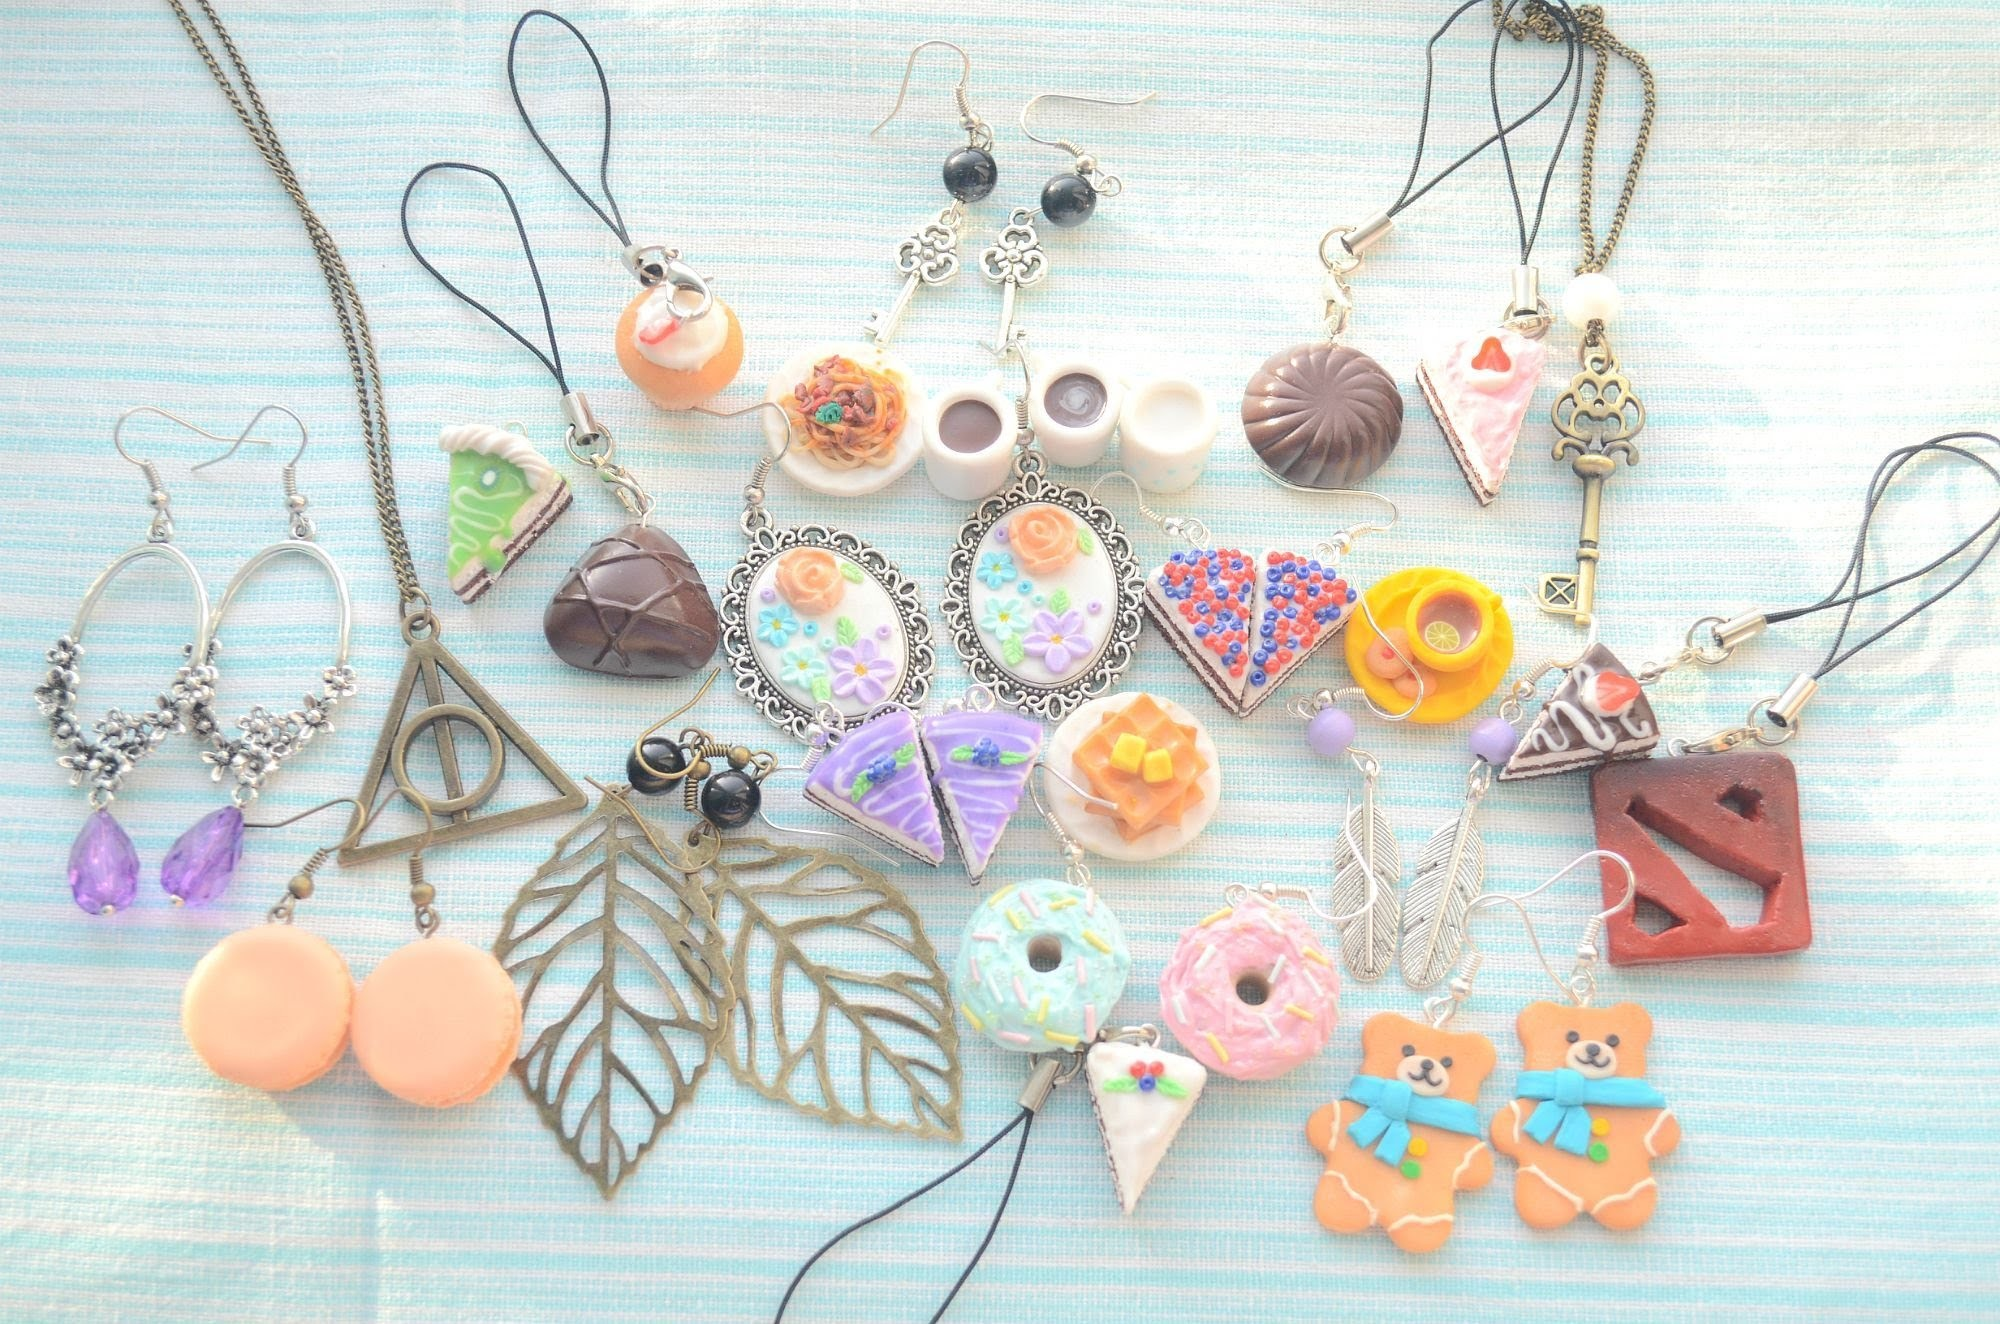 My jewelry from polymer clay 4^^